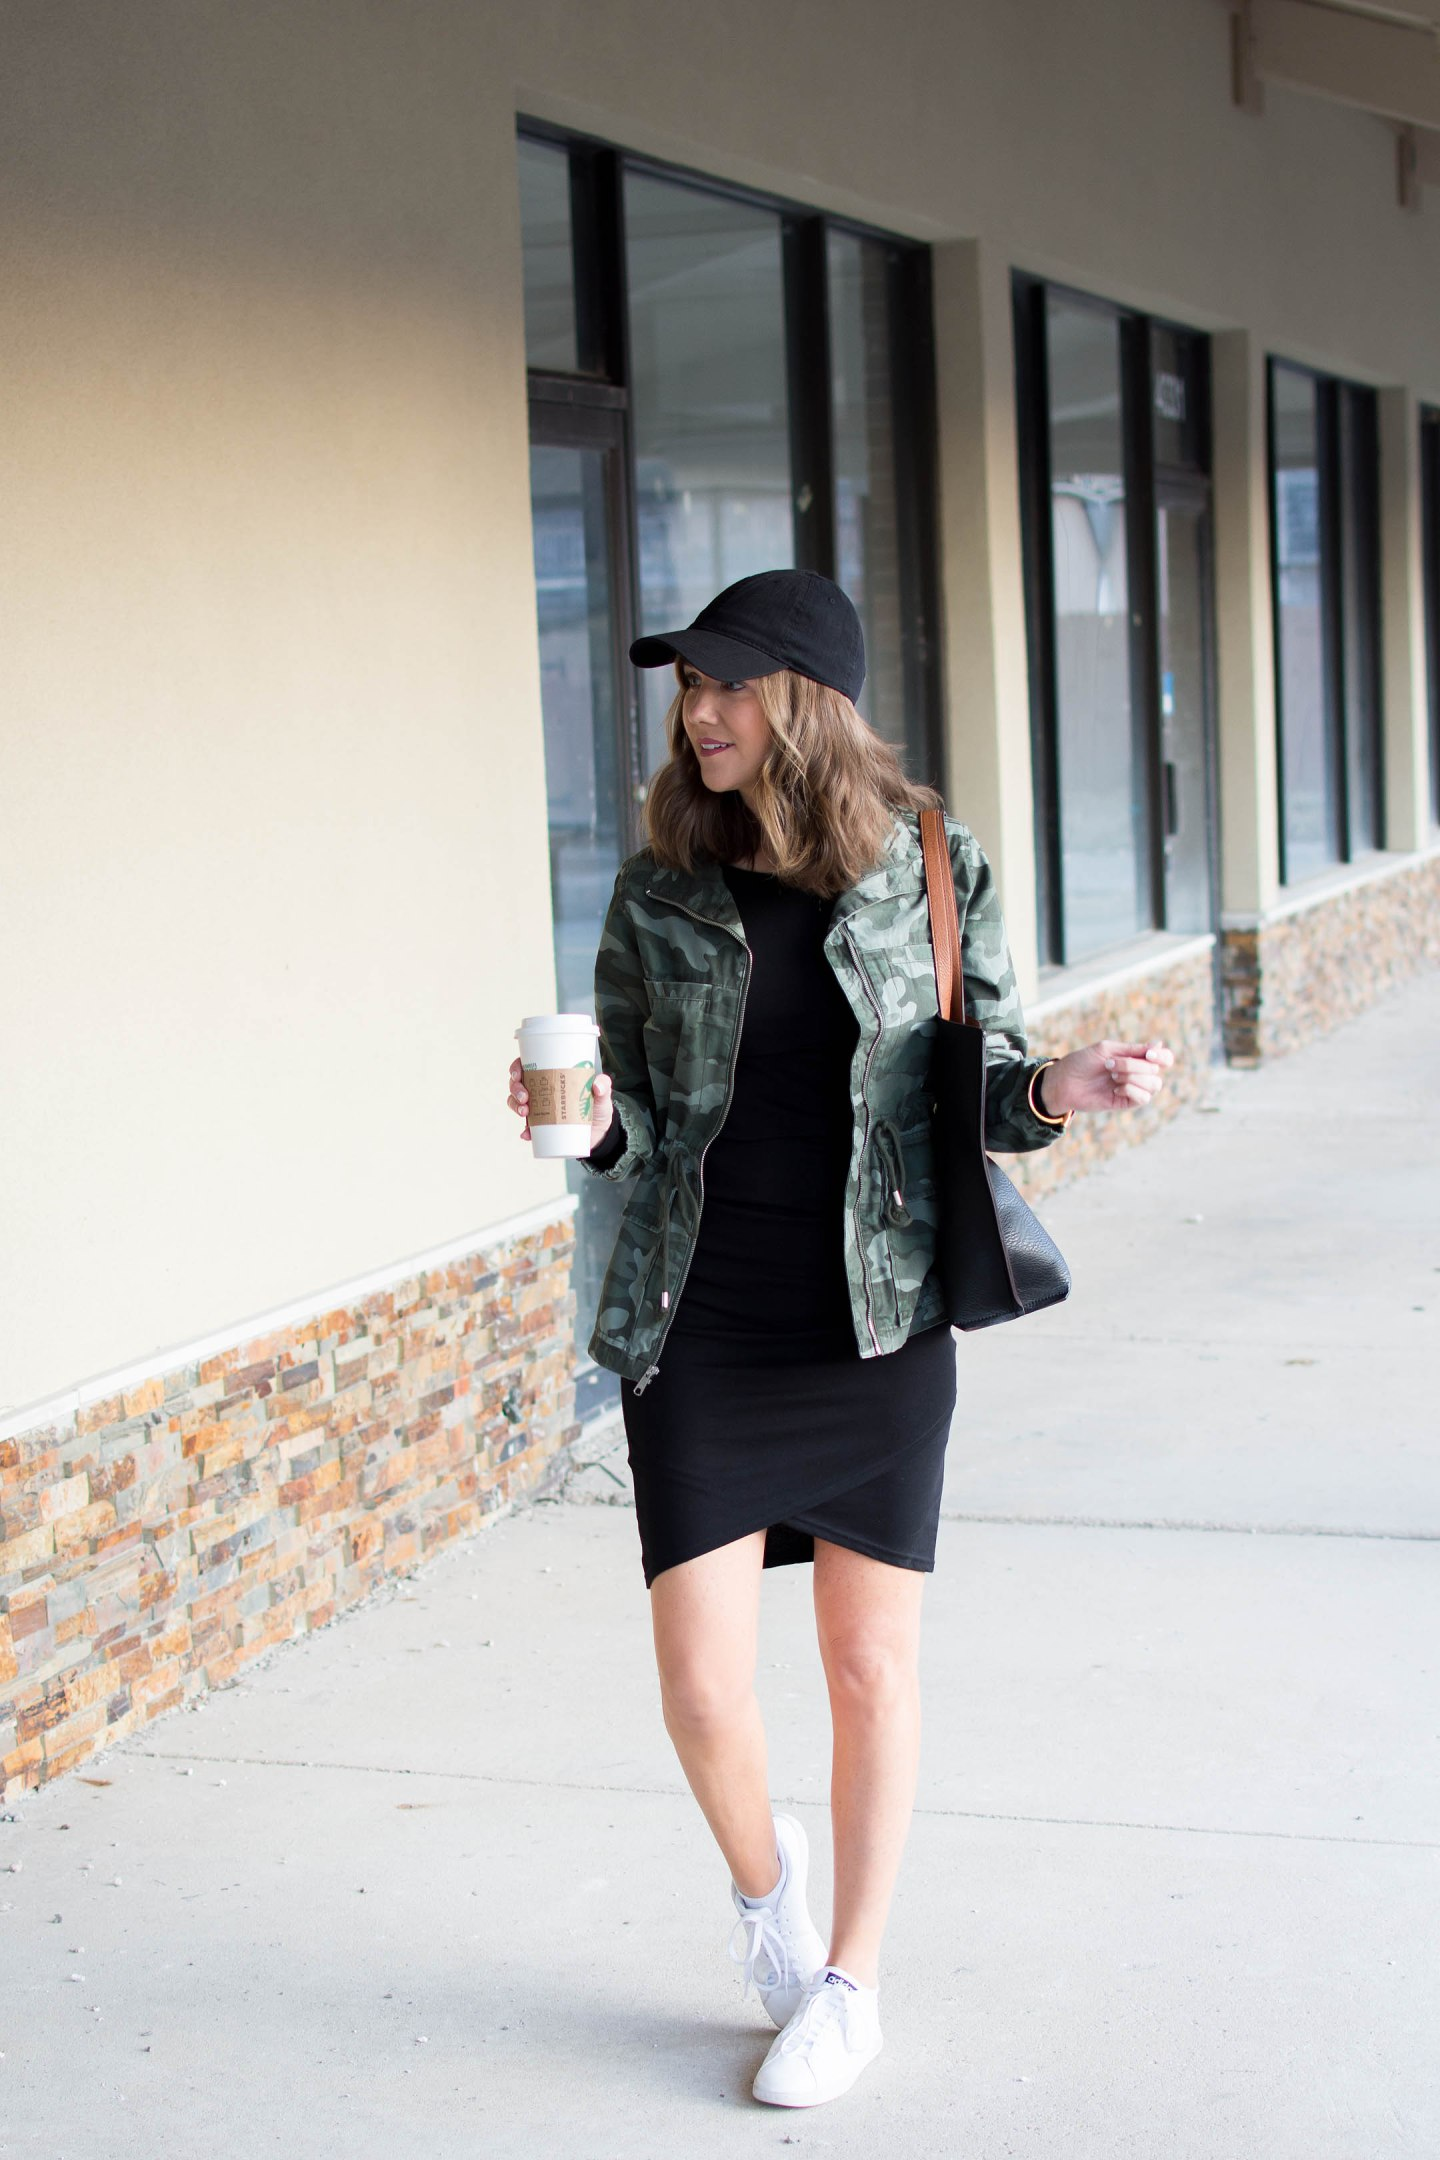 old navy camo field jacket, leith wrap dress, the dress that works for any body type, how to style a dress casually for spring weather, how to wear a dress with sneakers